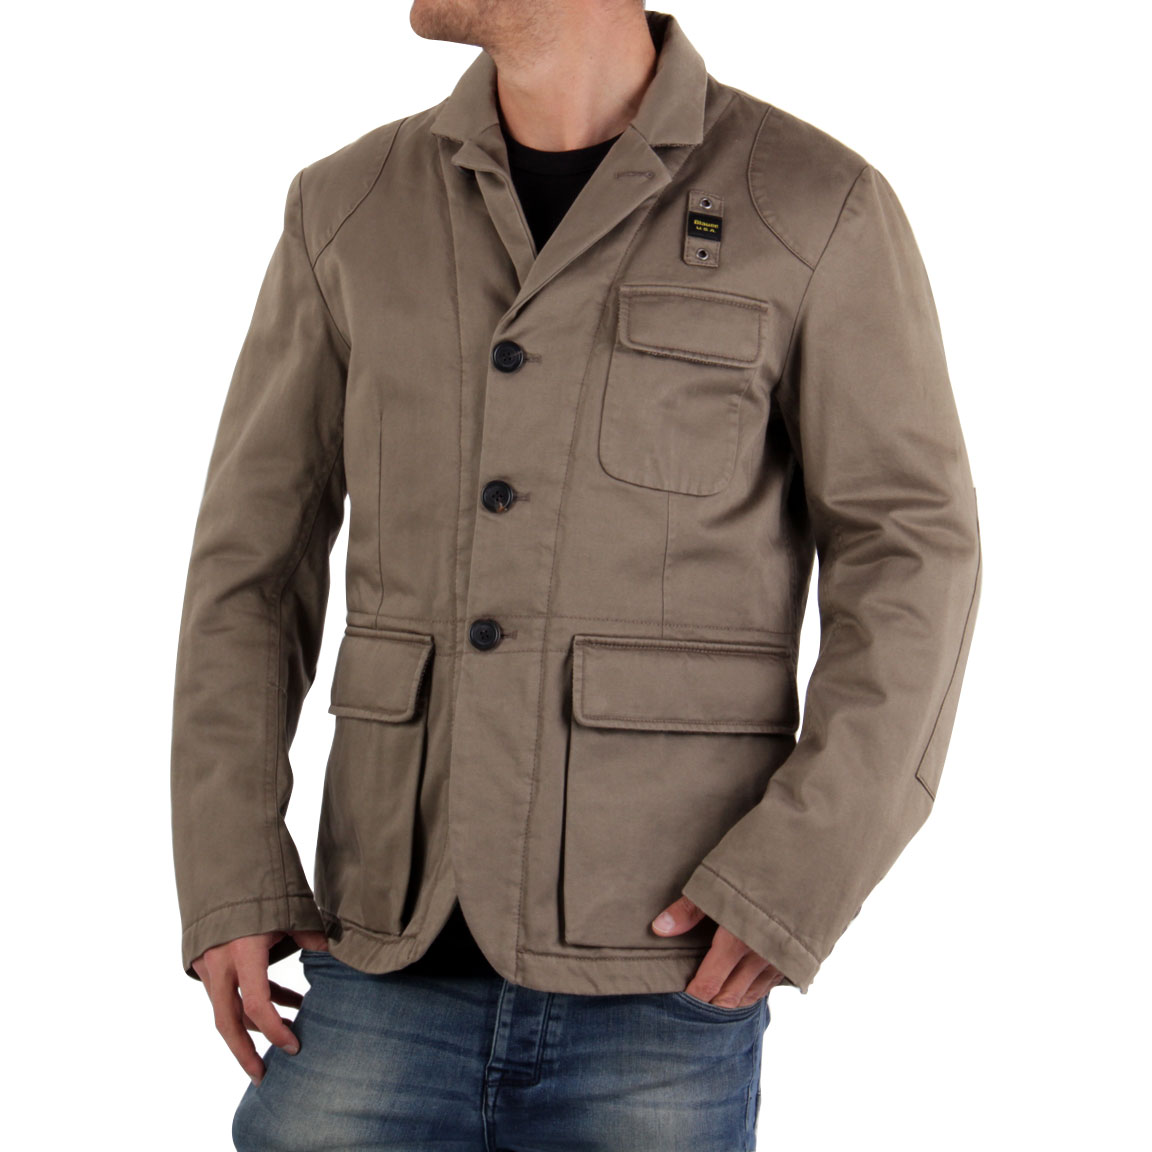 blauer usa men winter jacket dark beige blu0461 size l ebay. Black Bedroom Furniture Sets. Home Design Ideas